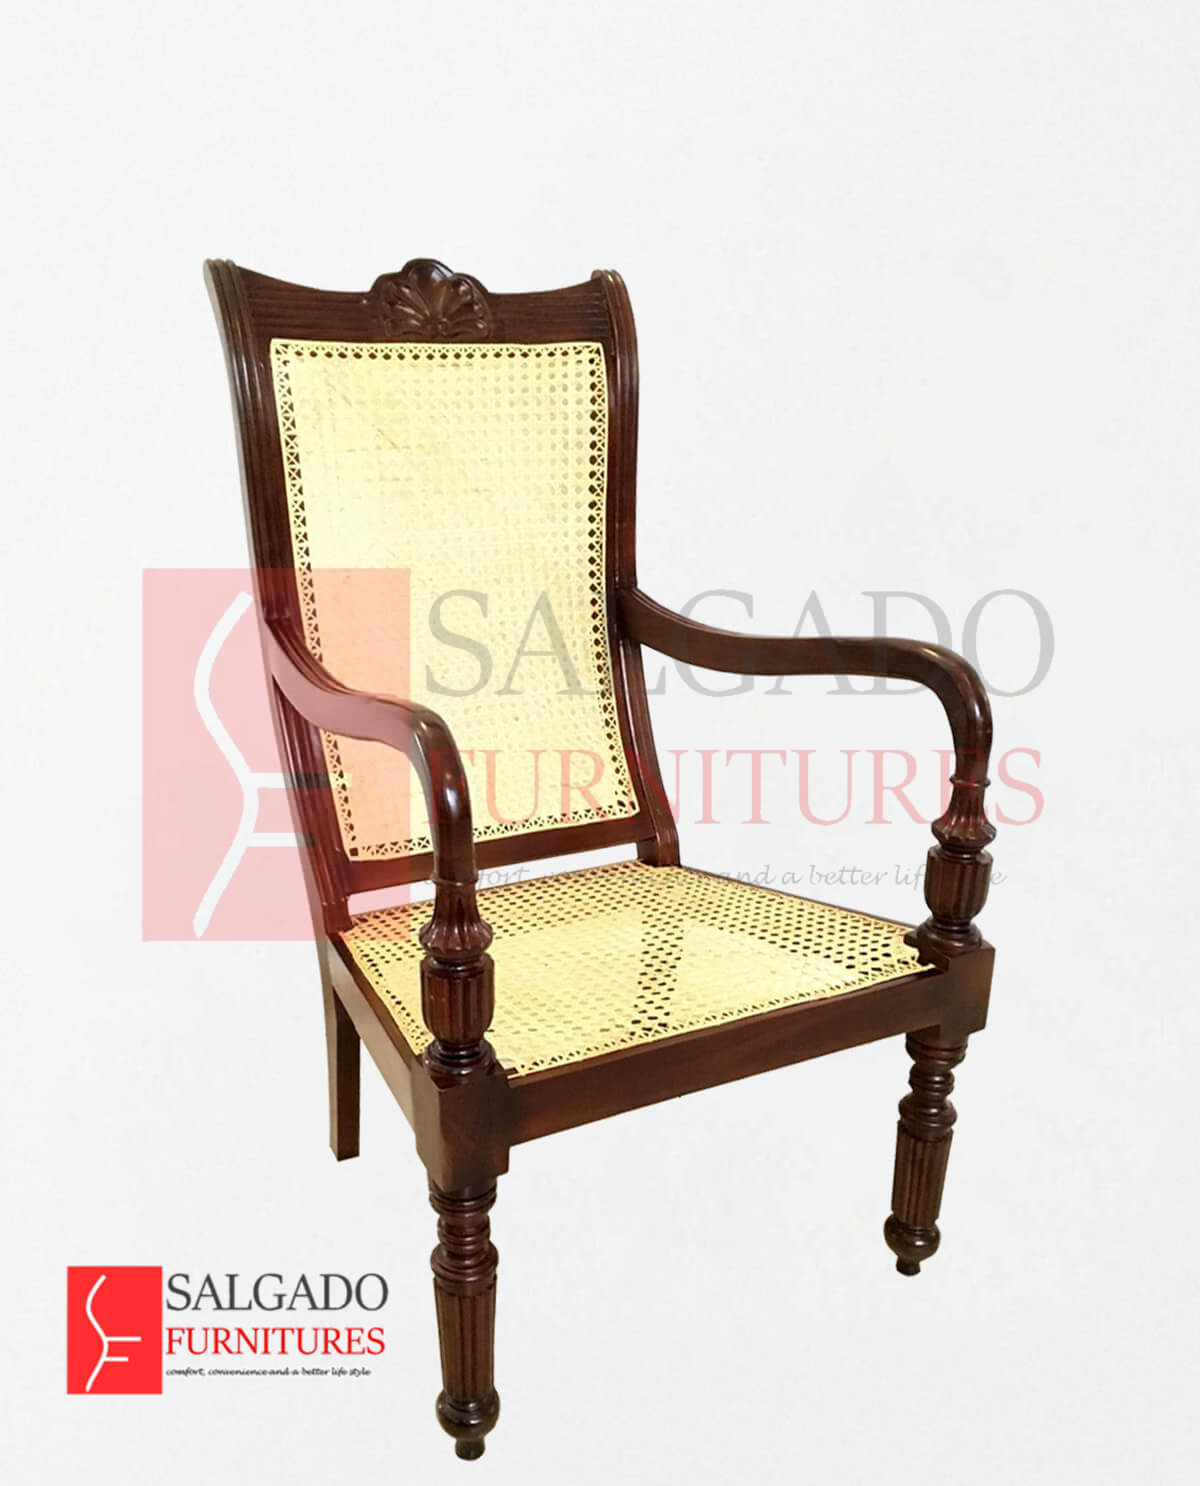 shell-varandha-chair